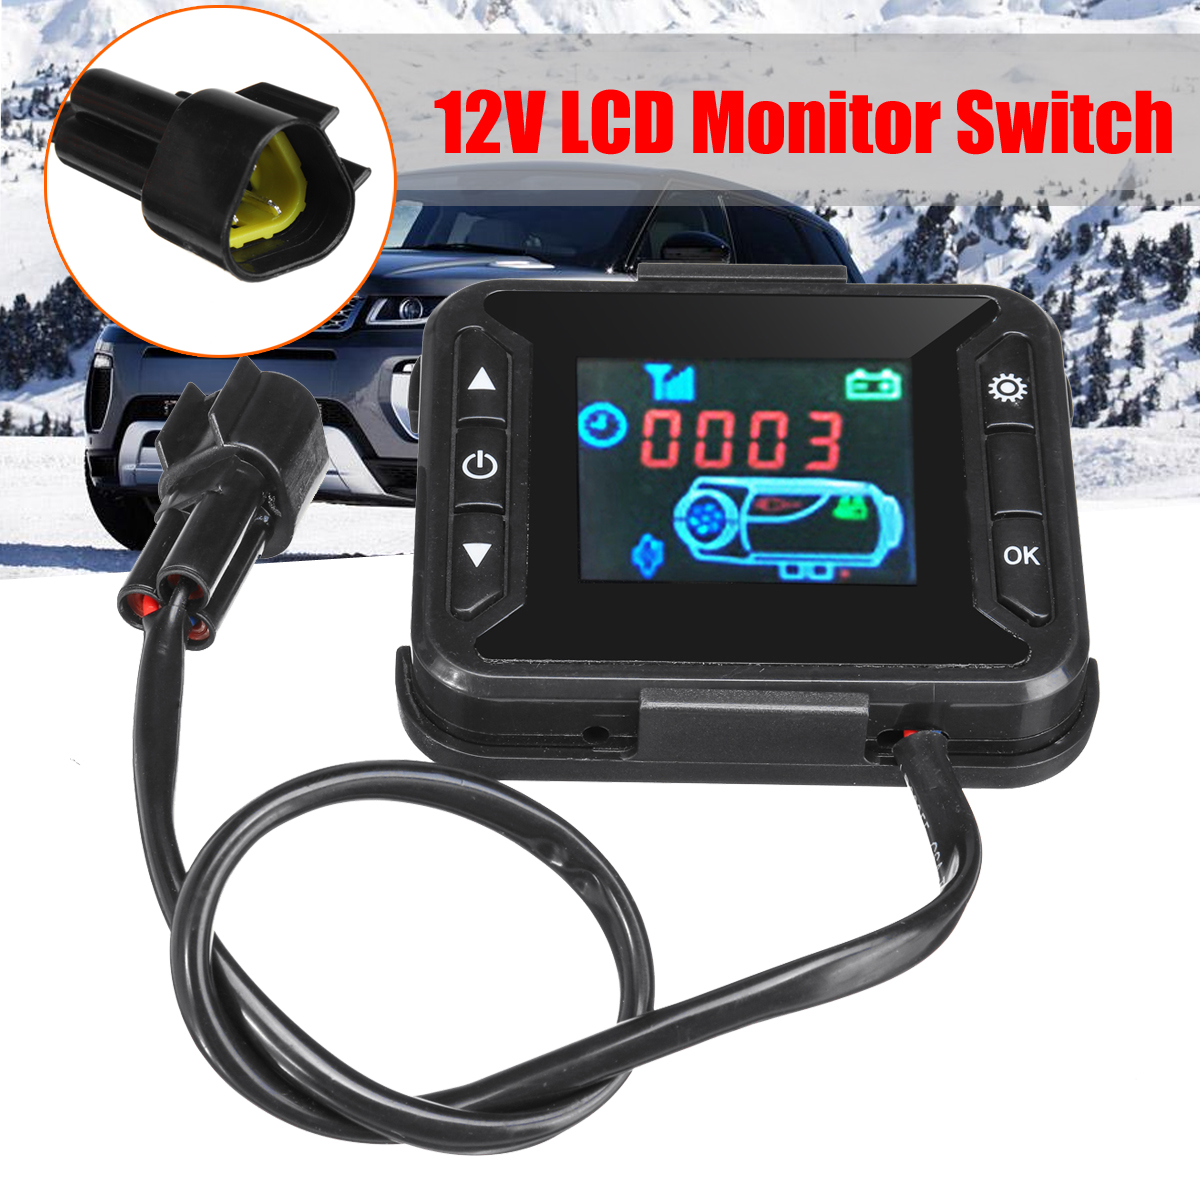 12V Car Heater LCD Monitor Switch Controller For Car Track Air Diesel Heater